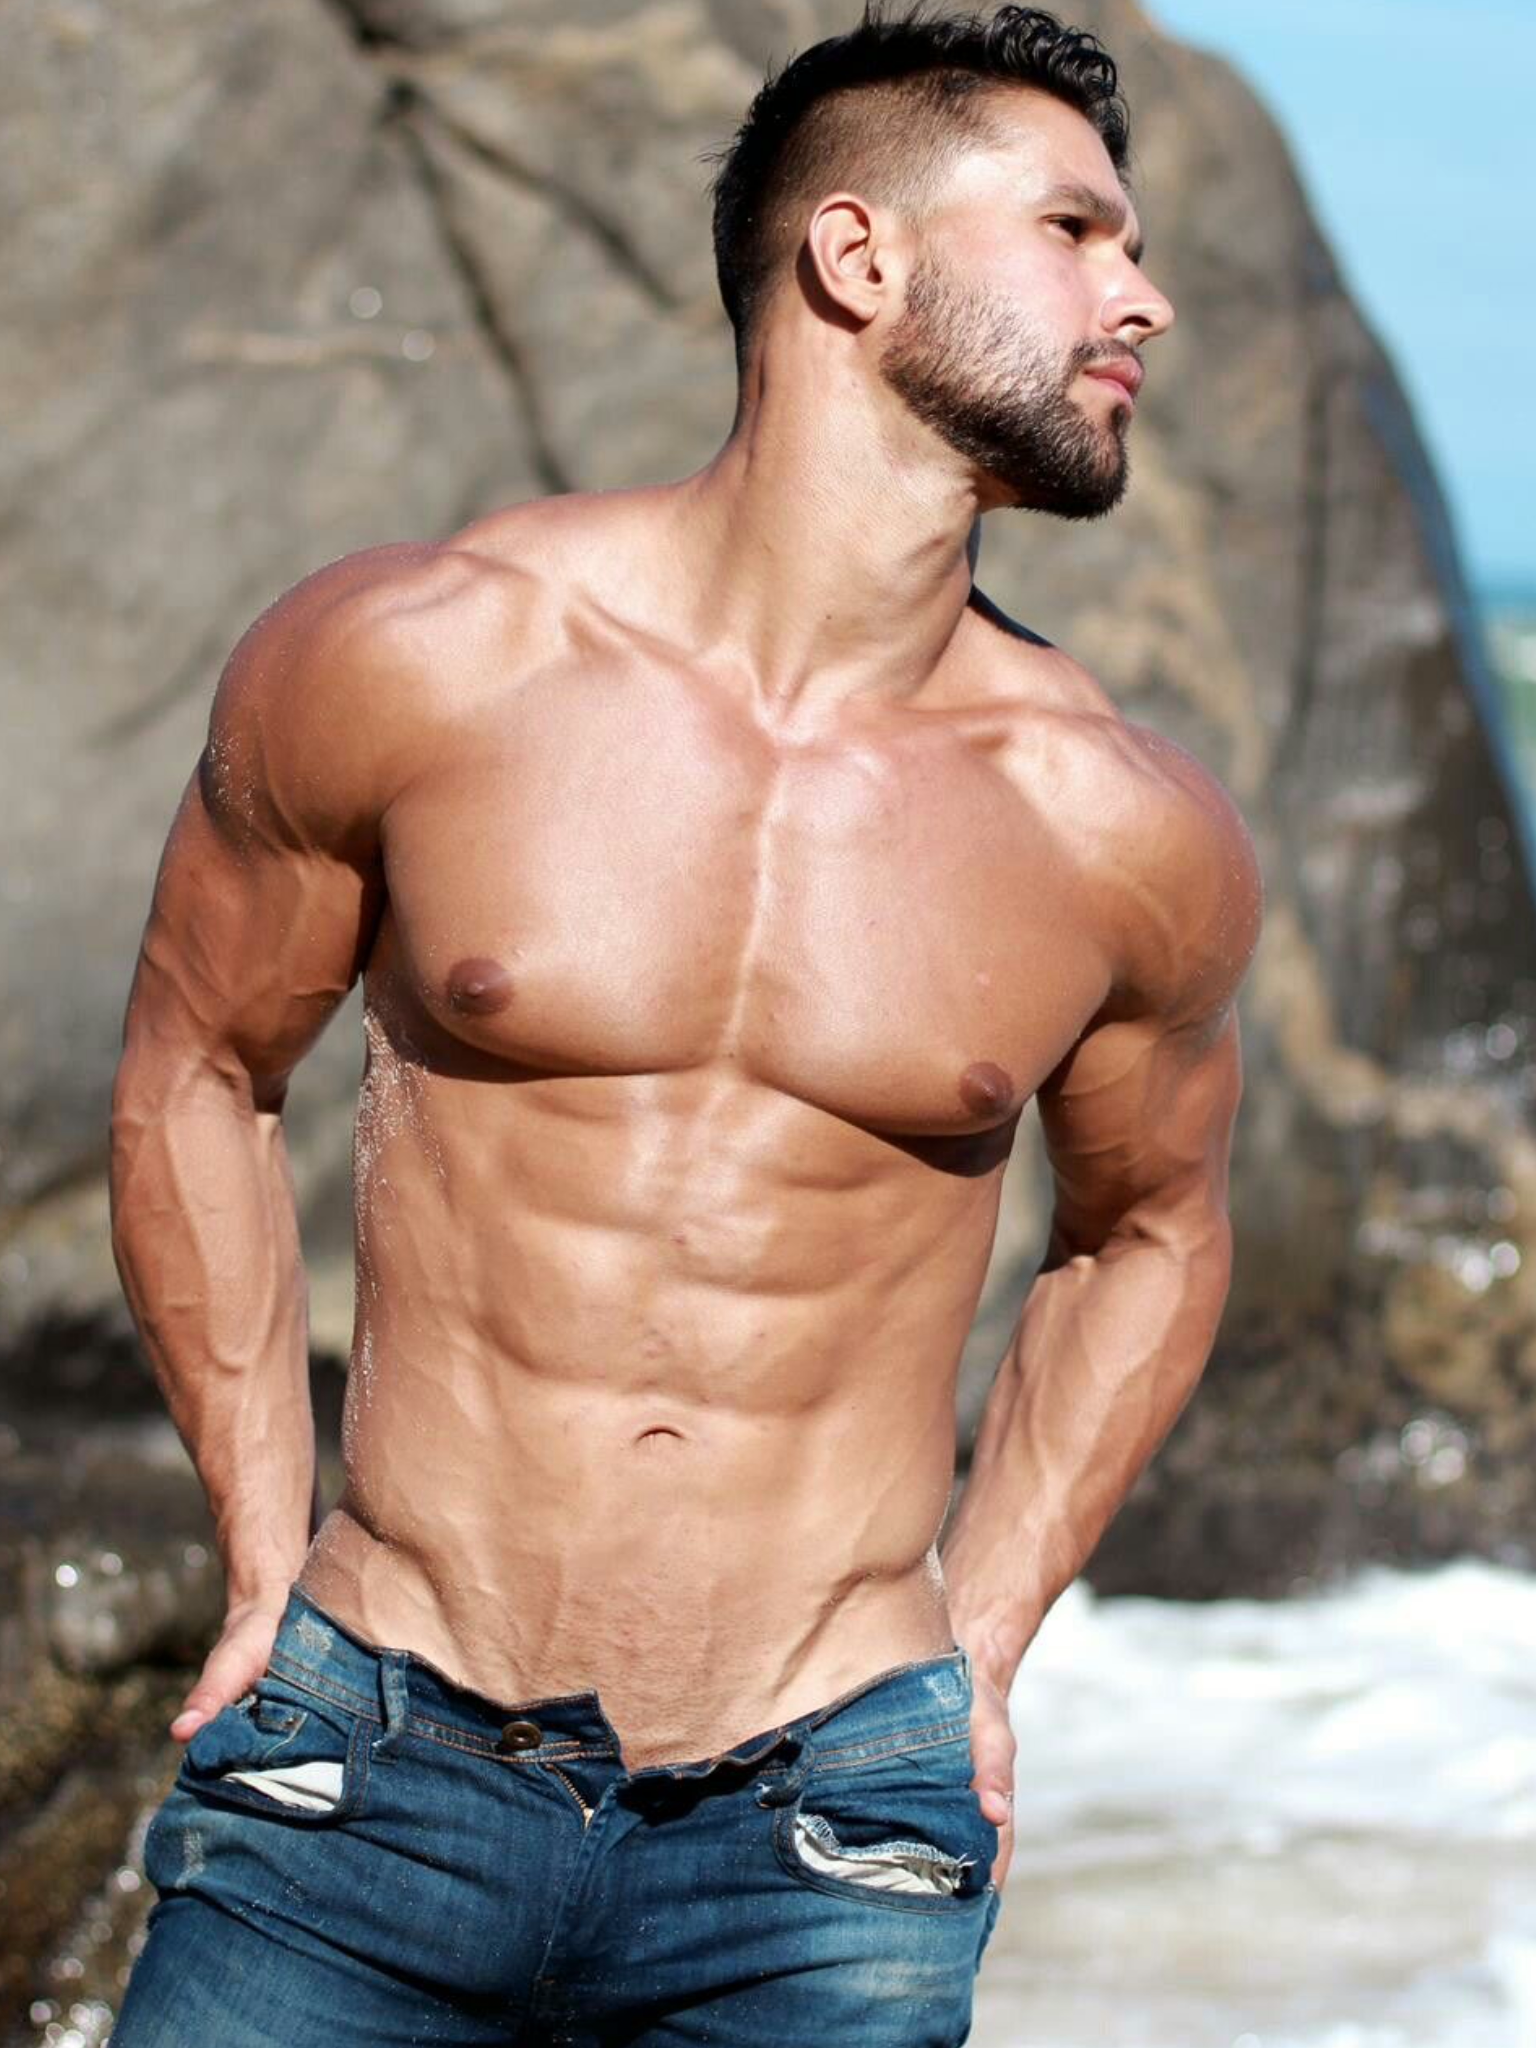 from Stetson sexi hot pic man